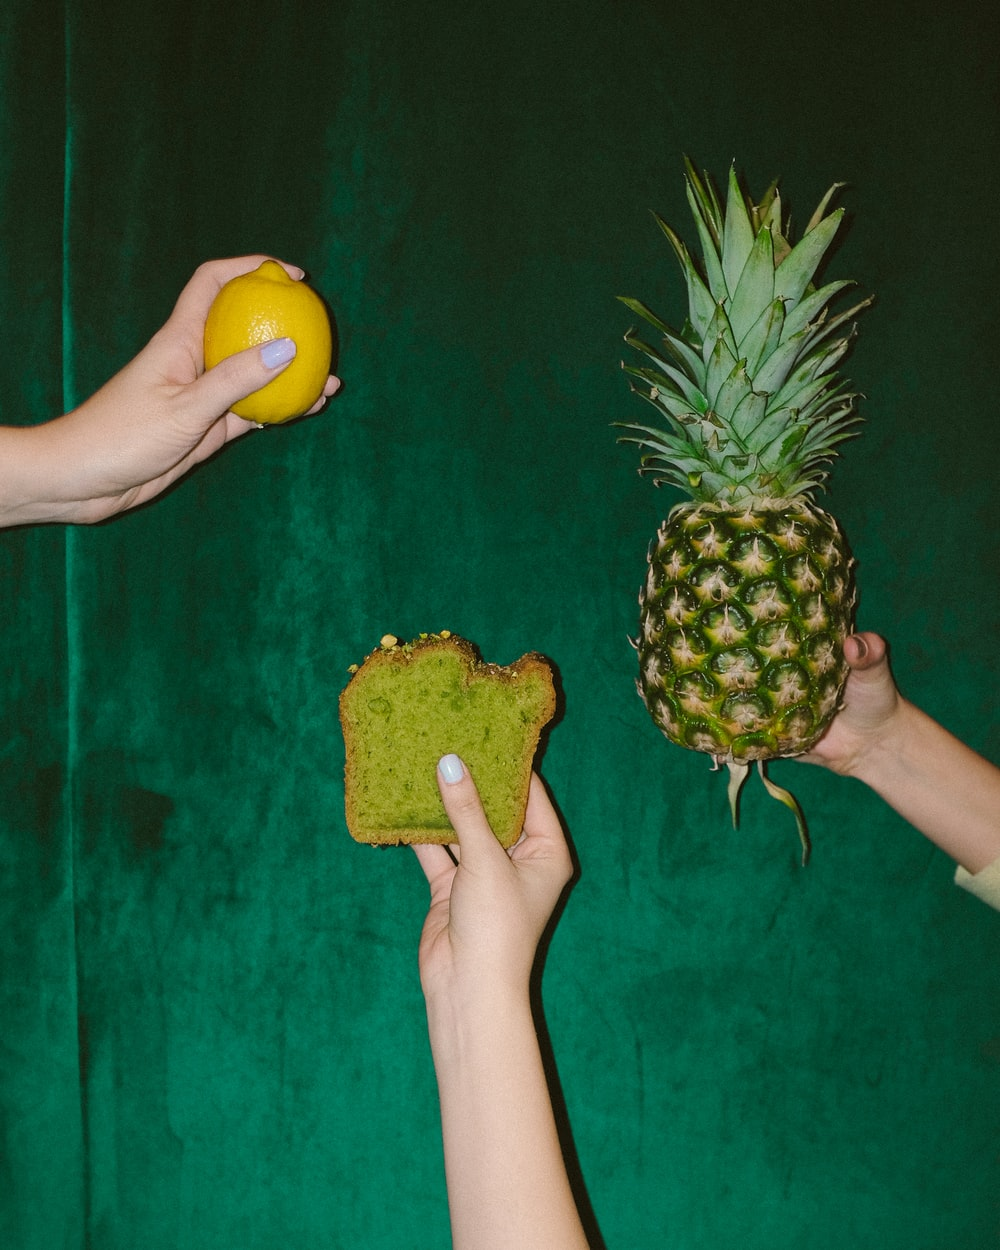 person holding pineapple fruit and pineapple fruit